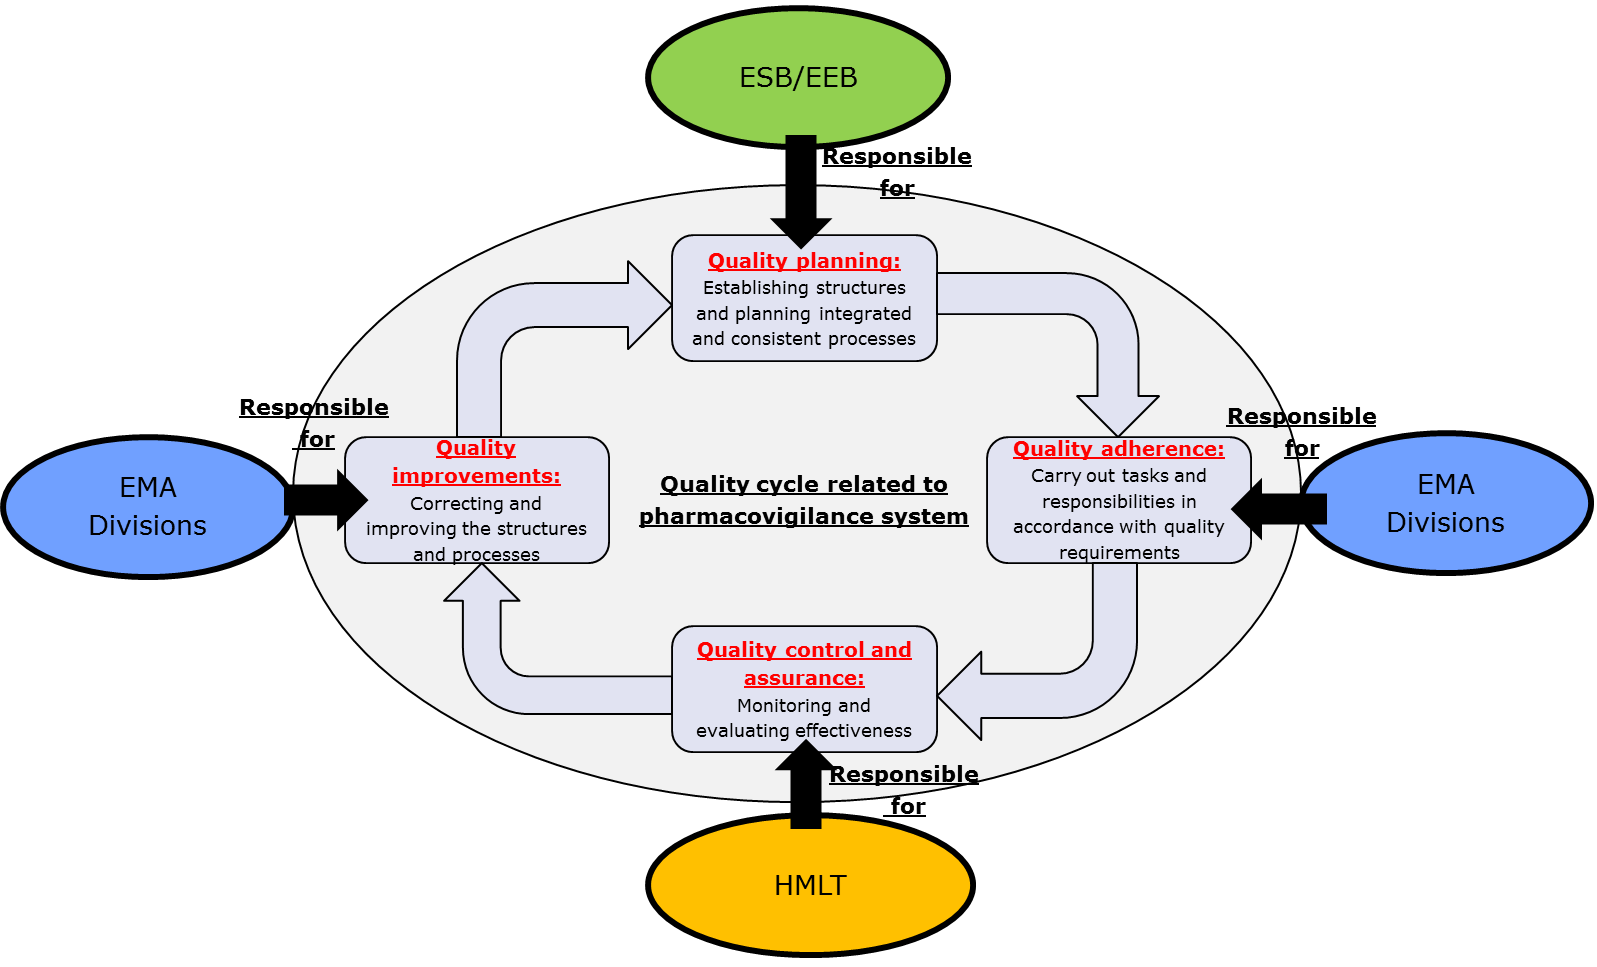 4.3. EMA management responsibility in the quality cycle of the pharmacovigilance system Figure 5 displays EMA leadership responsibility in the quality cycle related to the pharmacovigilance system.